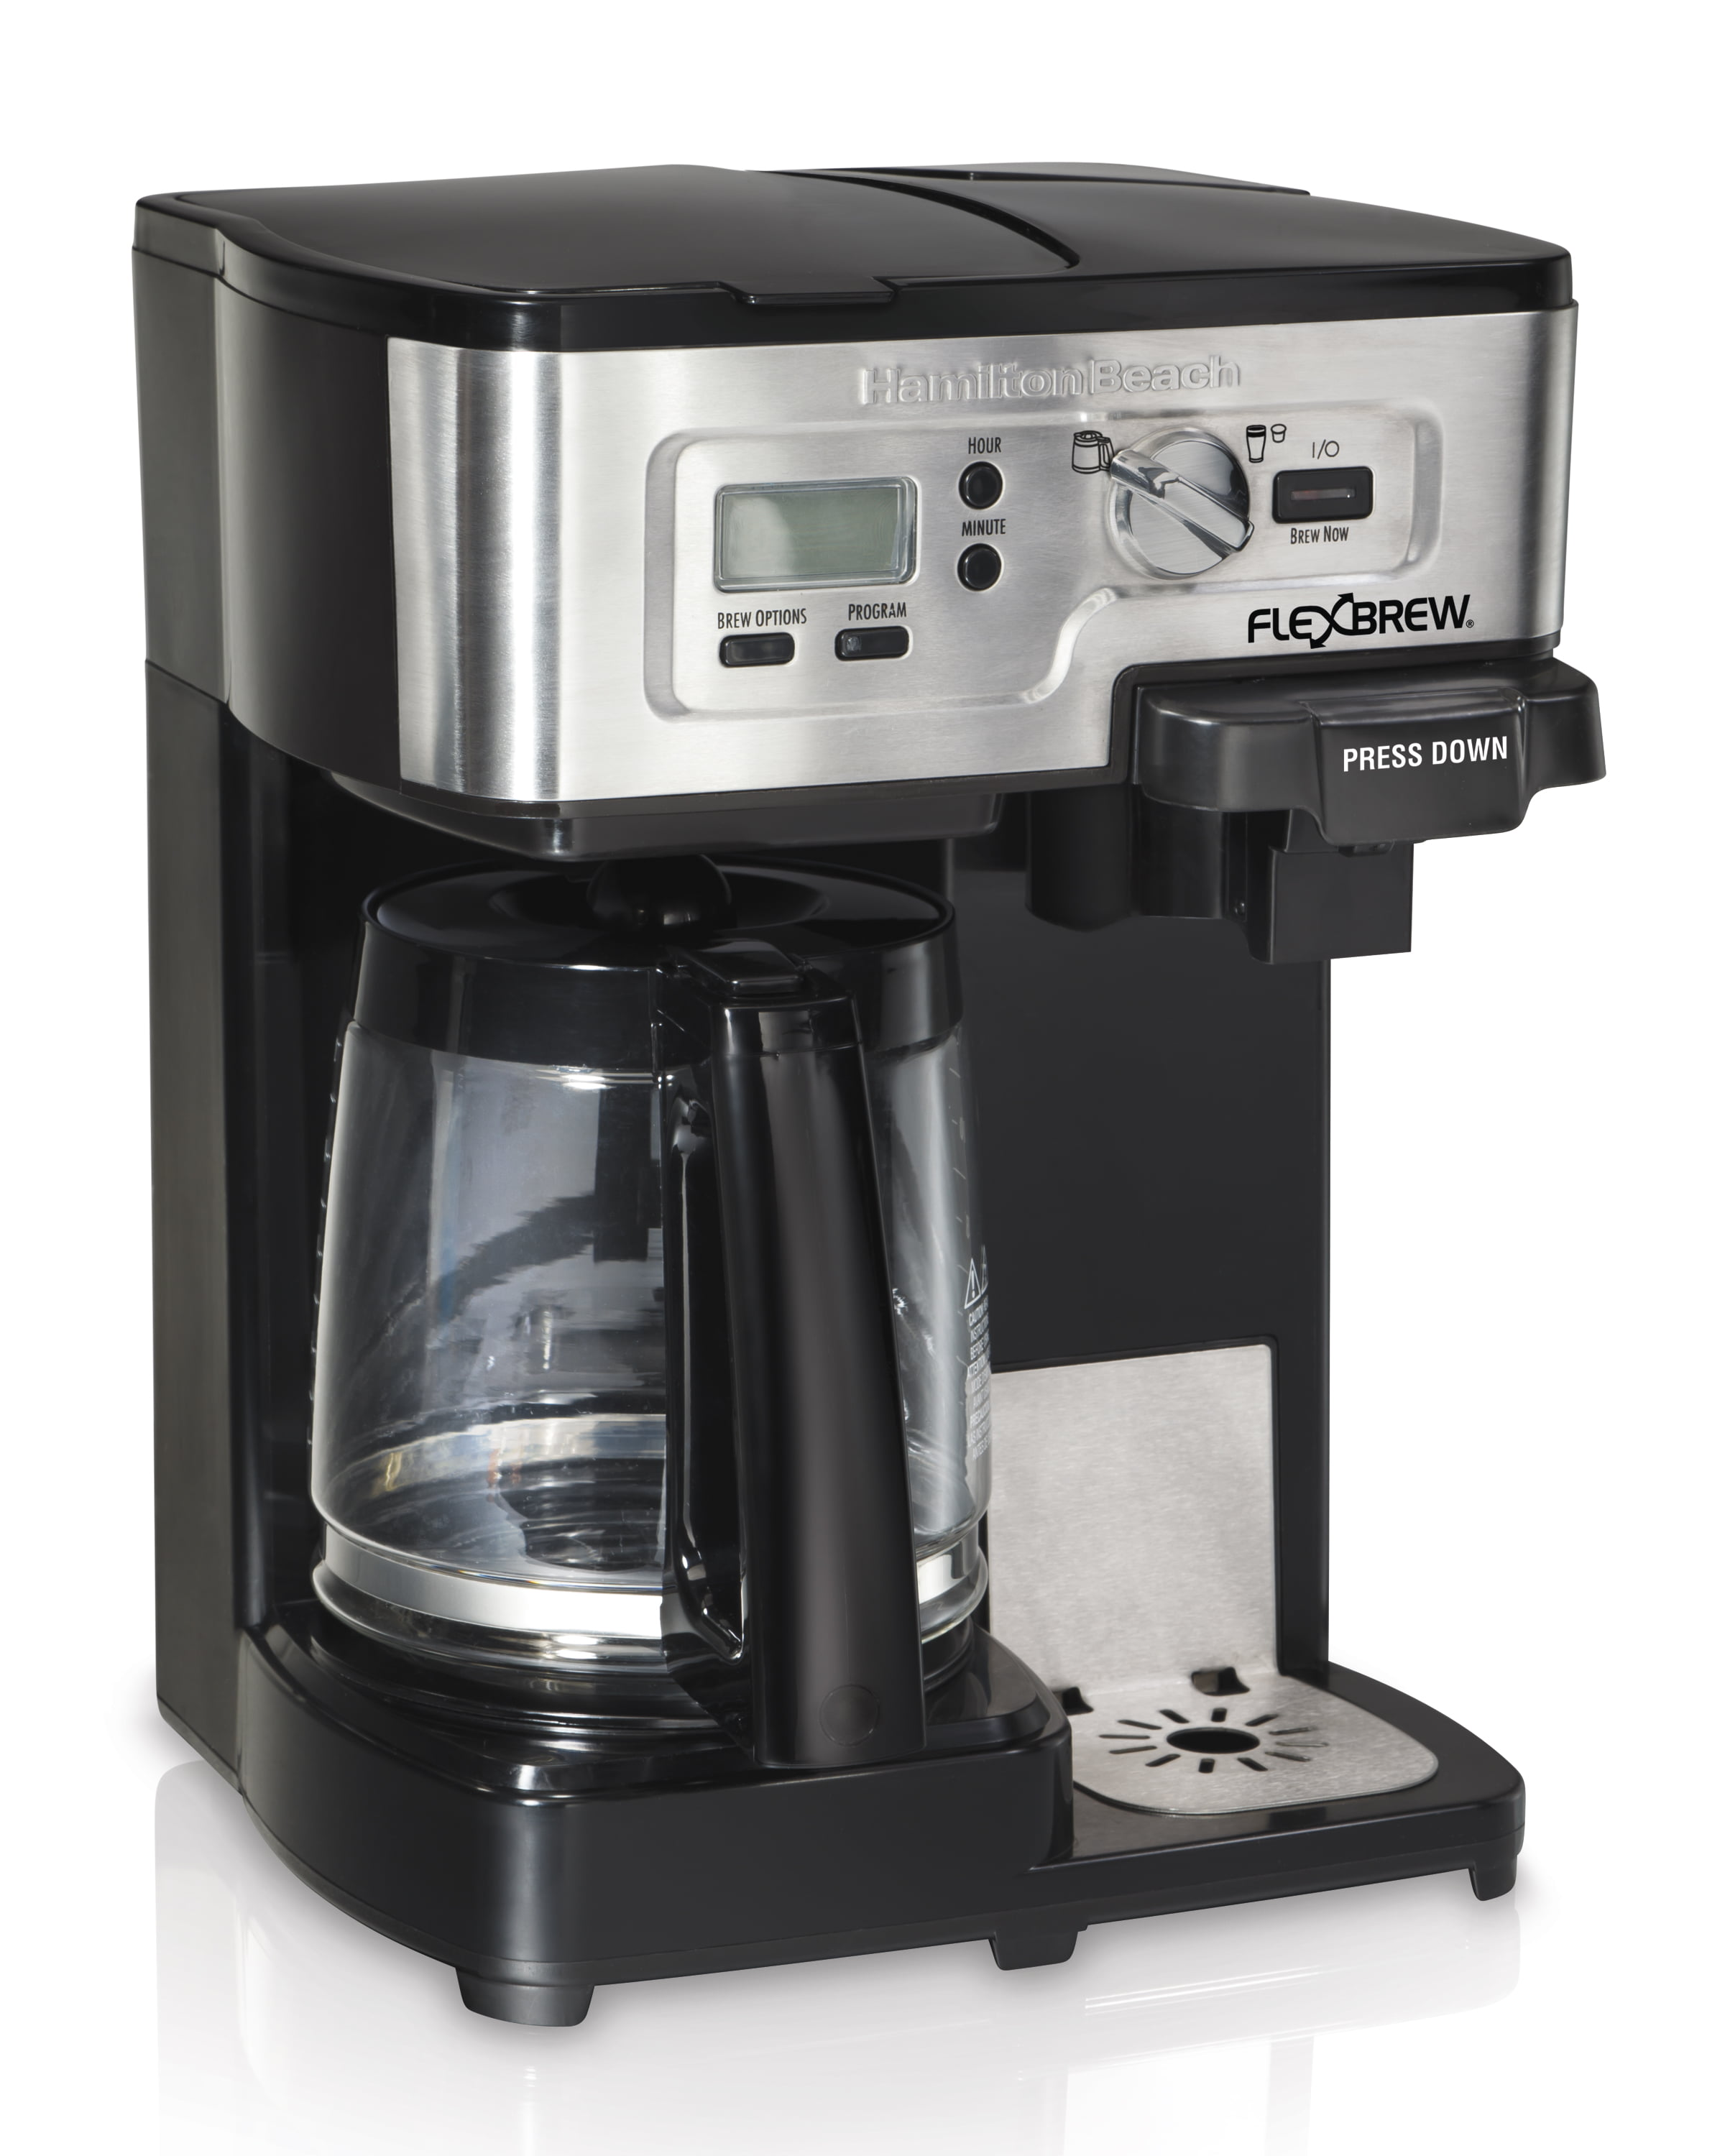 Hamilton Beach FlexBrew Way Coffee Maker Model - 5 most unique coffee shops in hamilton on